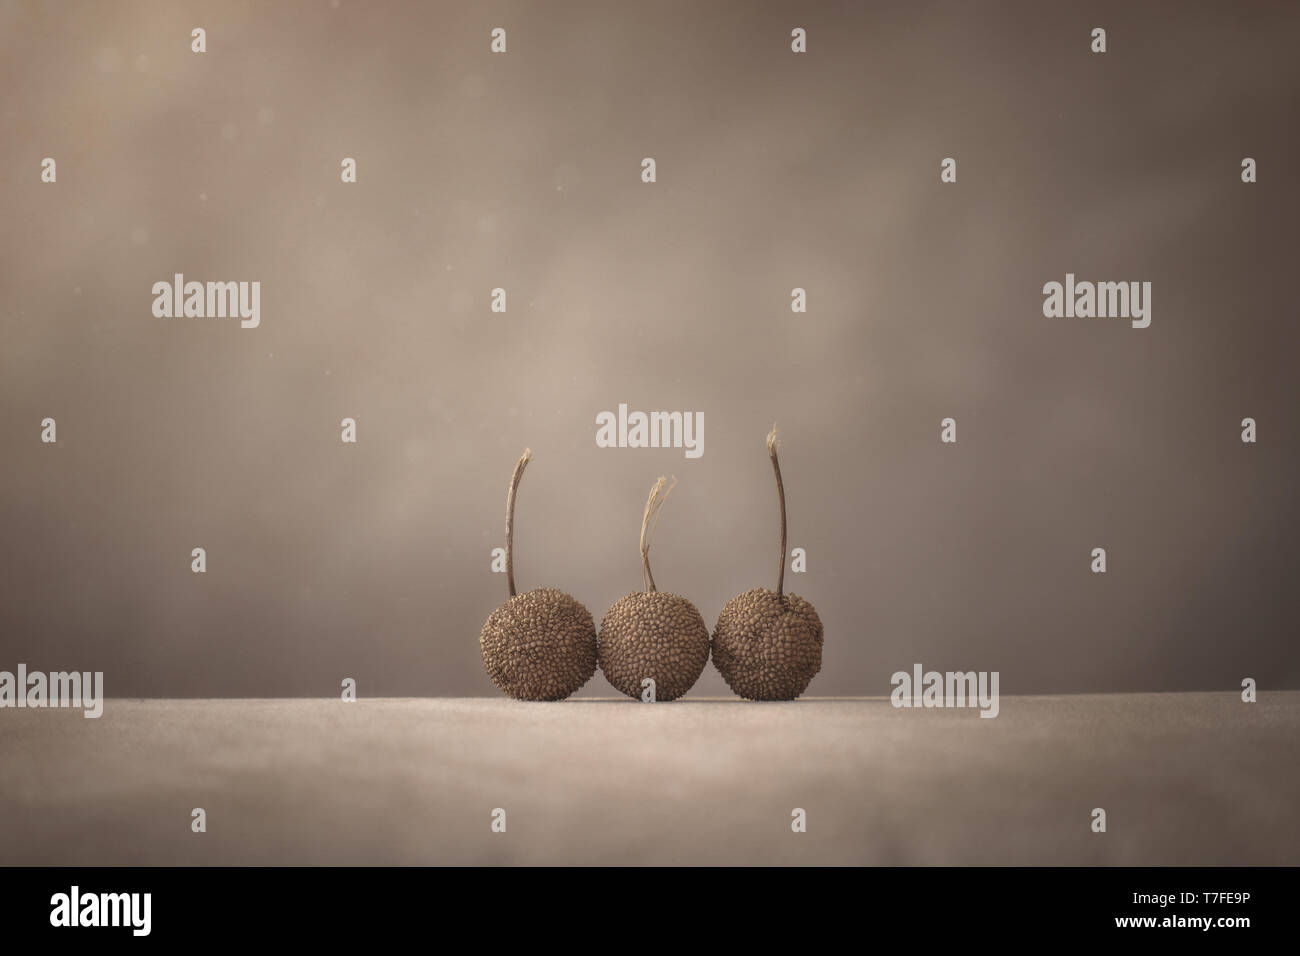 Three Sycamore tree seed pods on a warm light brown backlground.  Lots of space for graphics or copy. - Stock Image